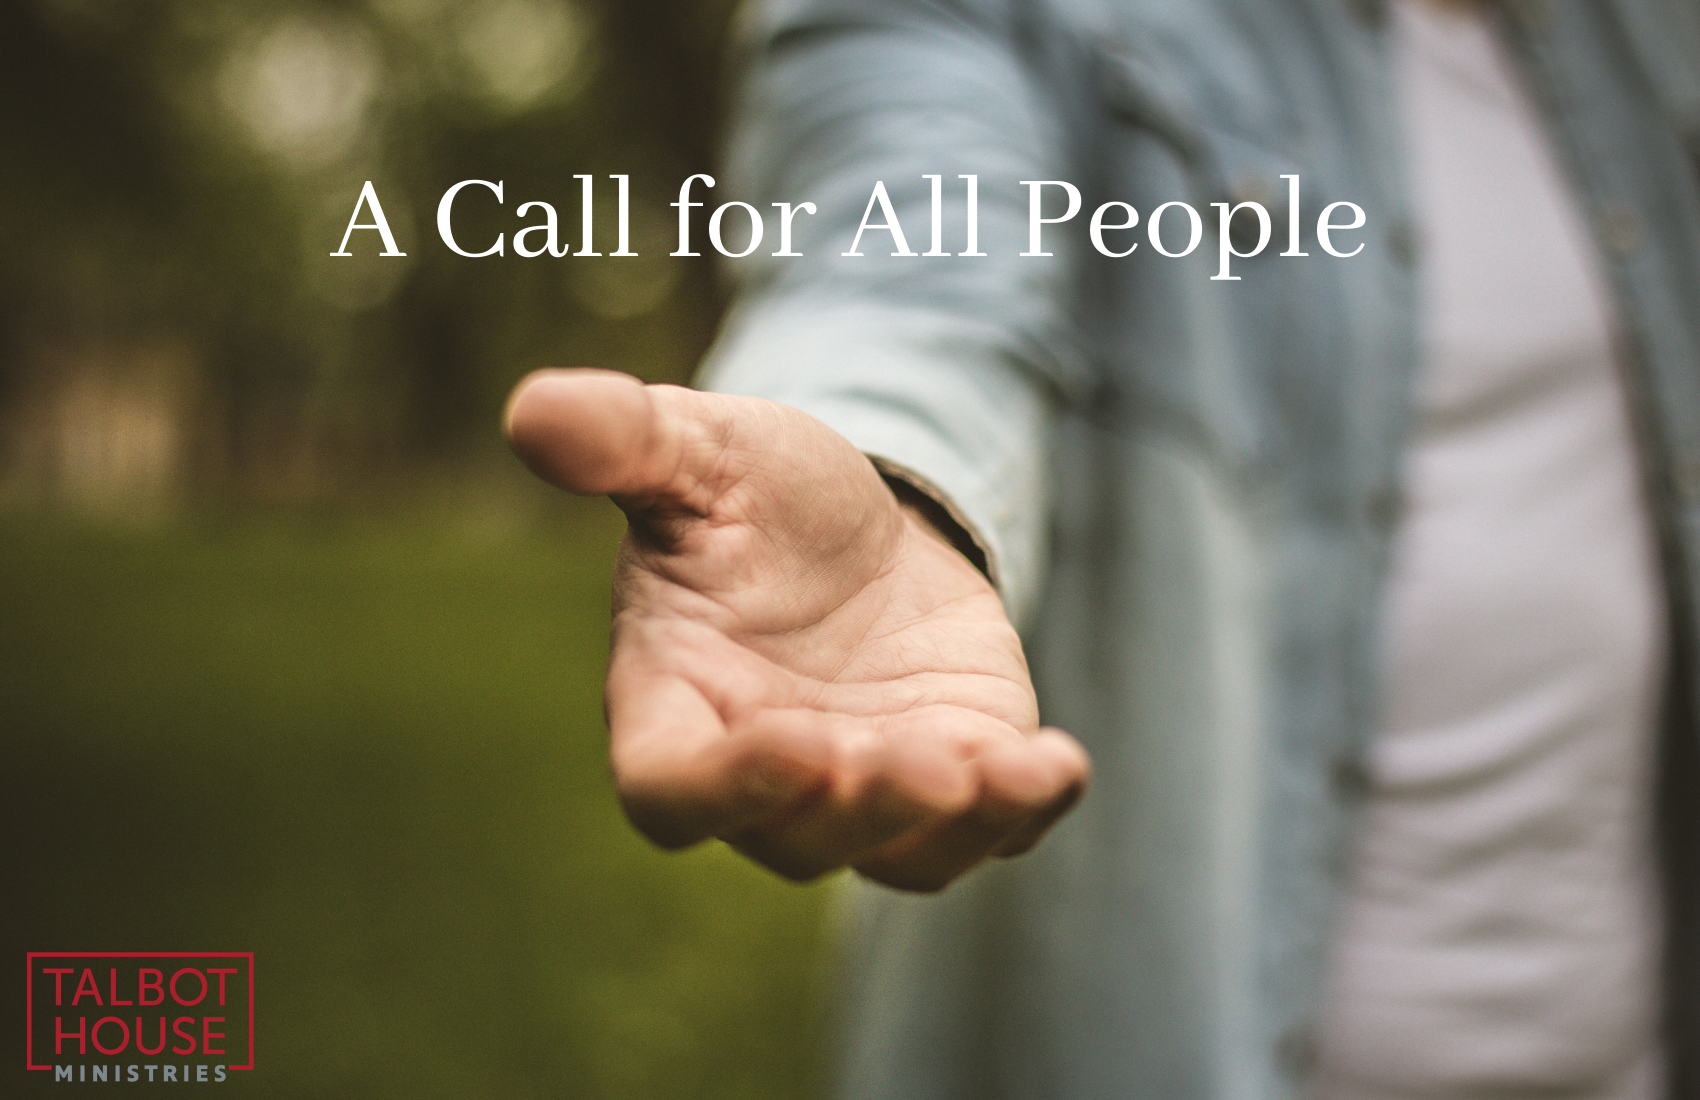 A Call for All People